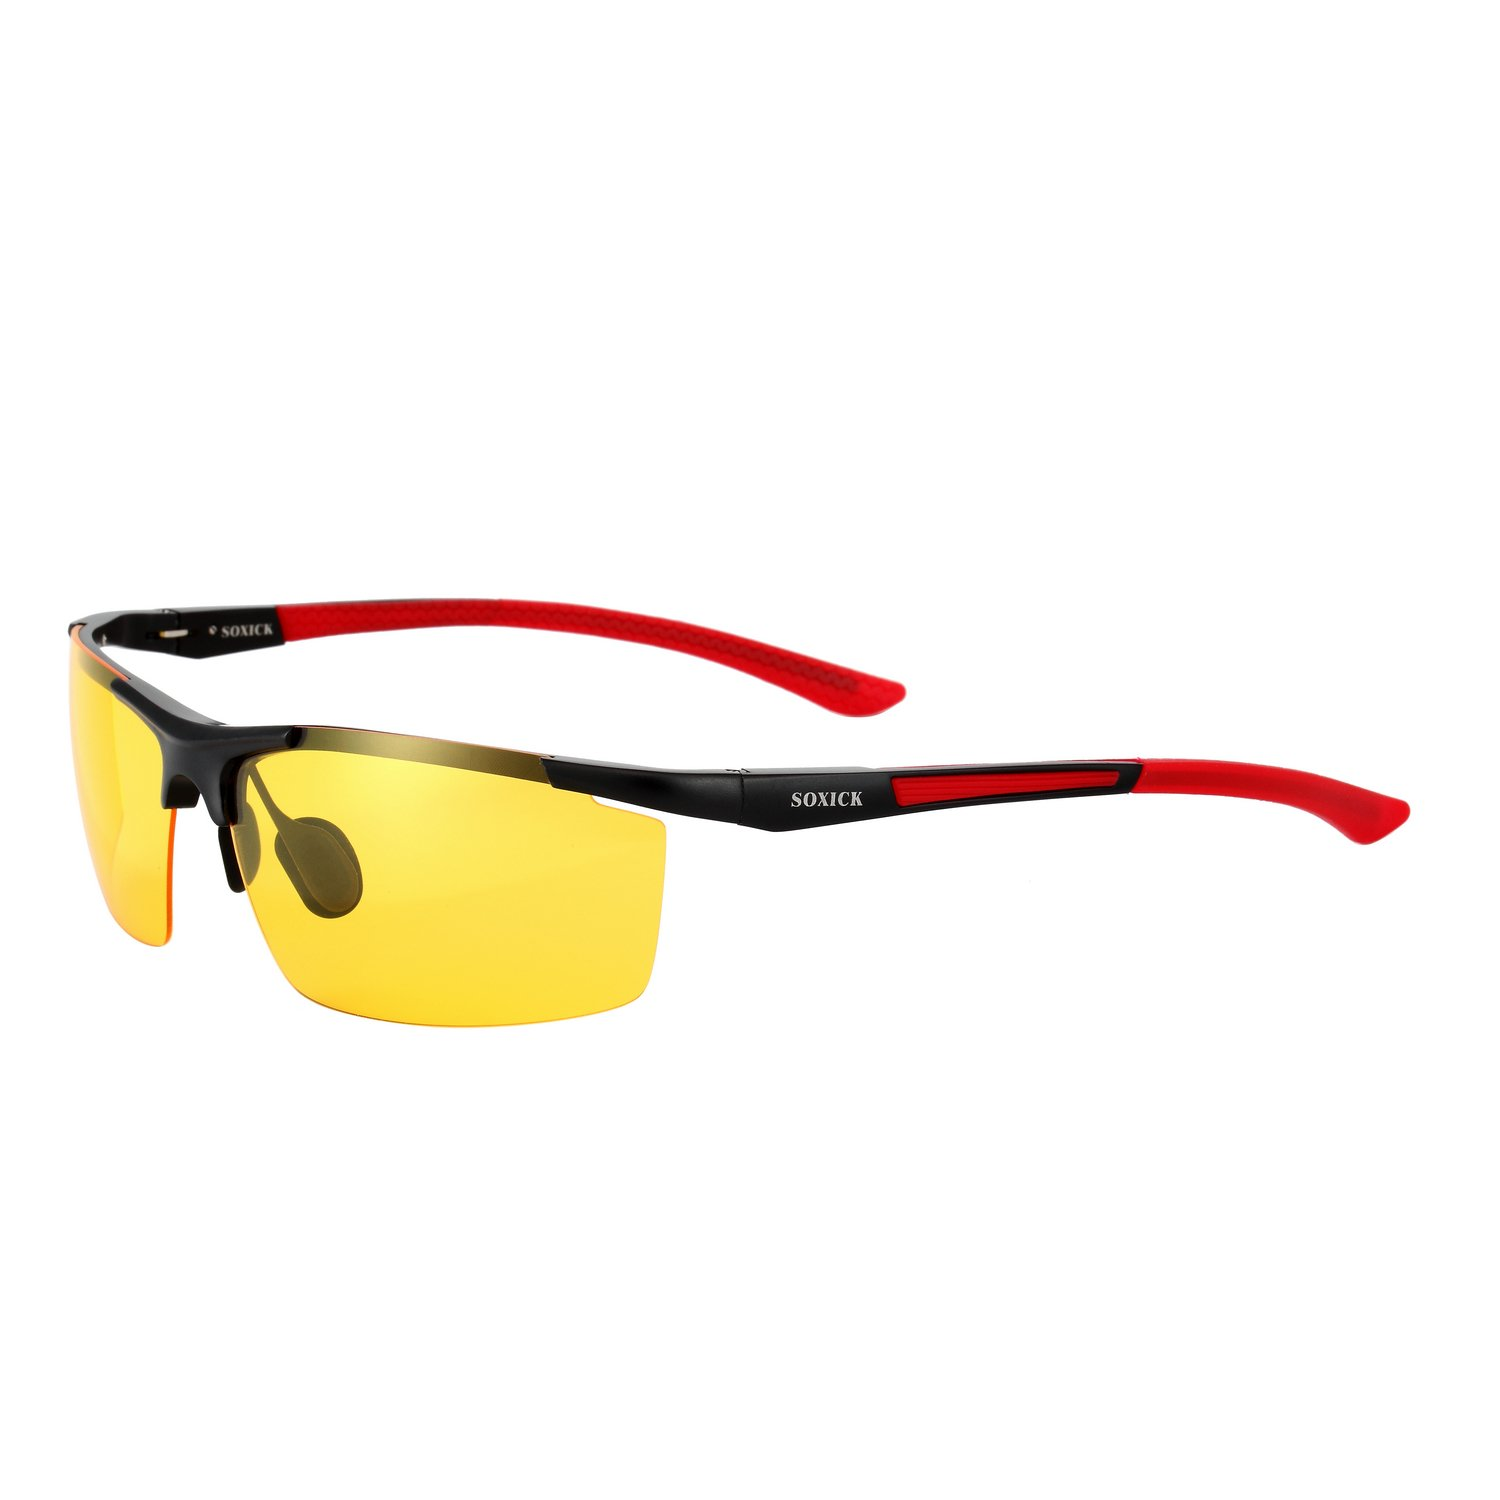 a9a3c85ed7 Night Vision Glasses for Driving Night Driving Glasses for Man Women Anti  Glare Improve Driving Safety (red) at Amazon Men s Clothing store